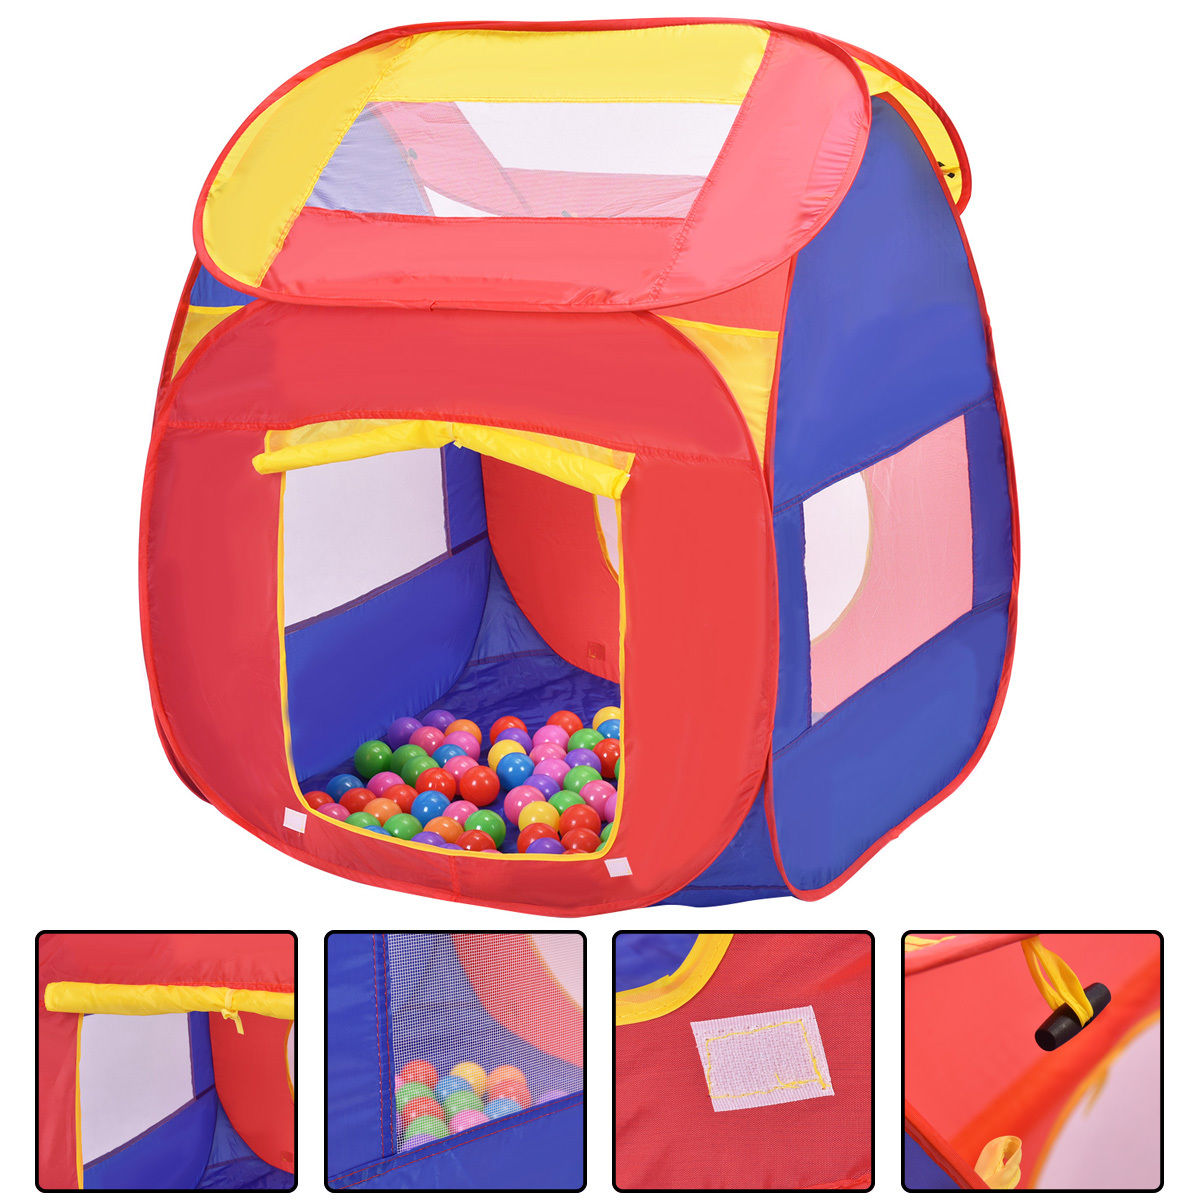 Costway Portable Kid Baby Play House Indoor Outdoor Toy Tent Game Playhut With 100 Balls  sc 1 st  Walmart & Costway Portable Kid Baby Play House Indoor Outdoor Toy Tent Game ...